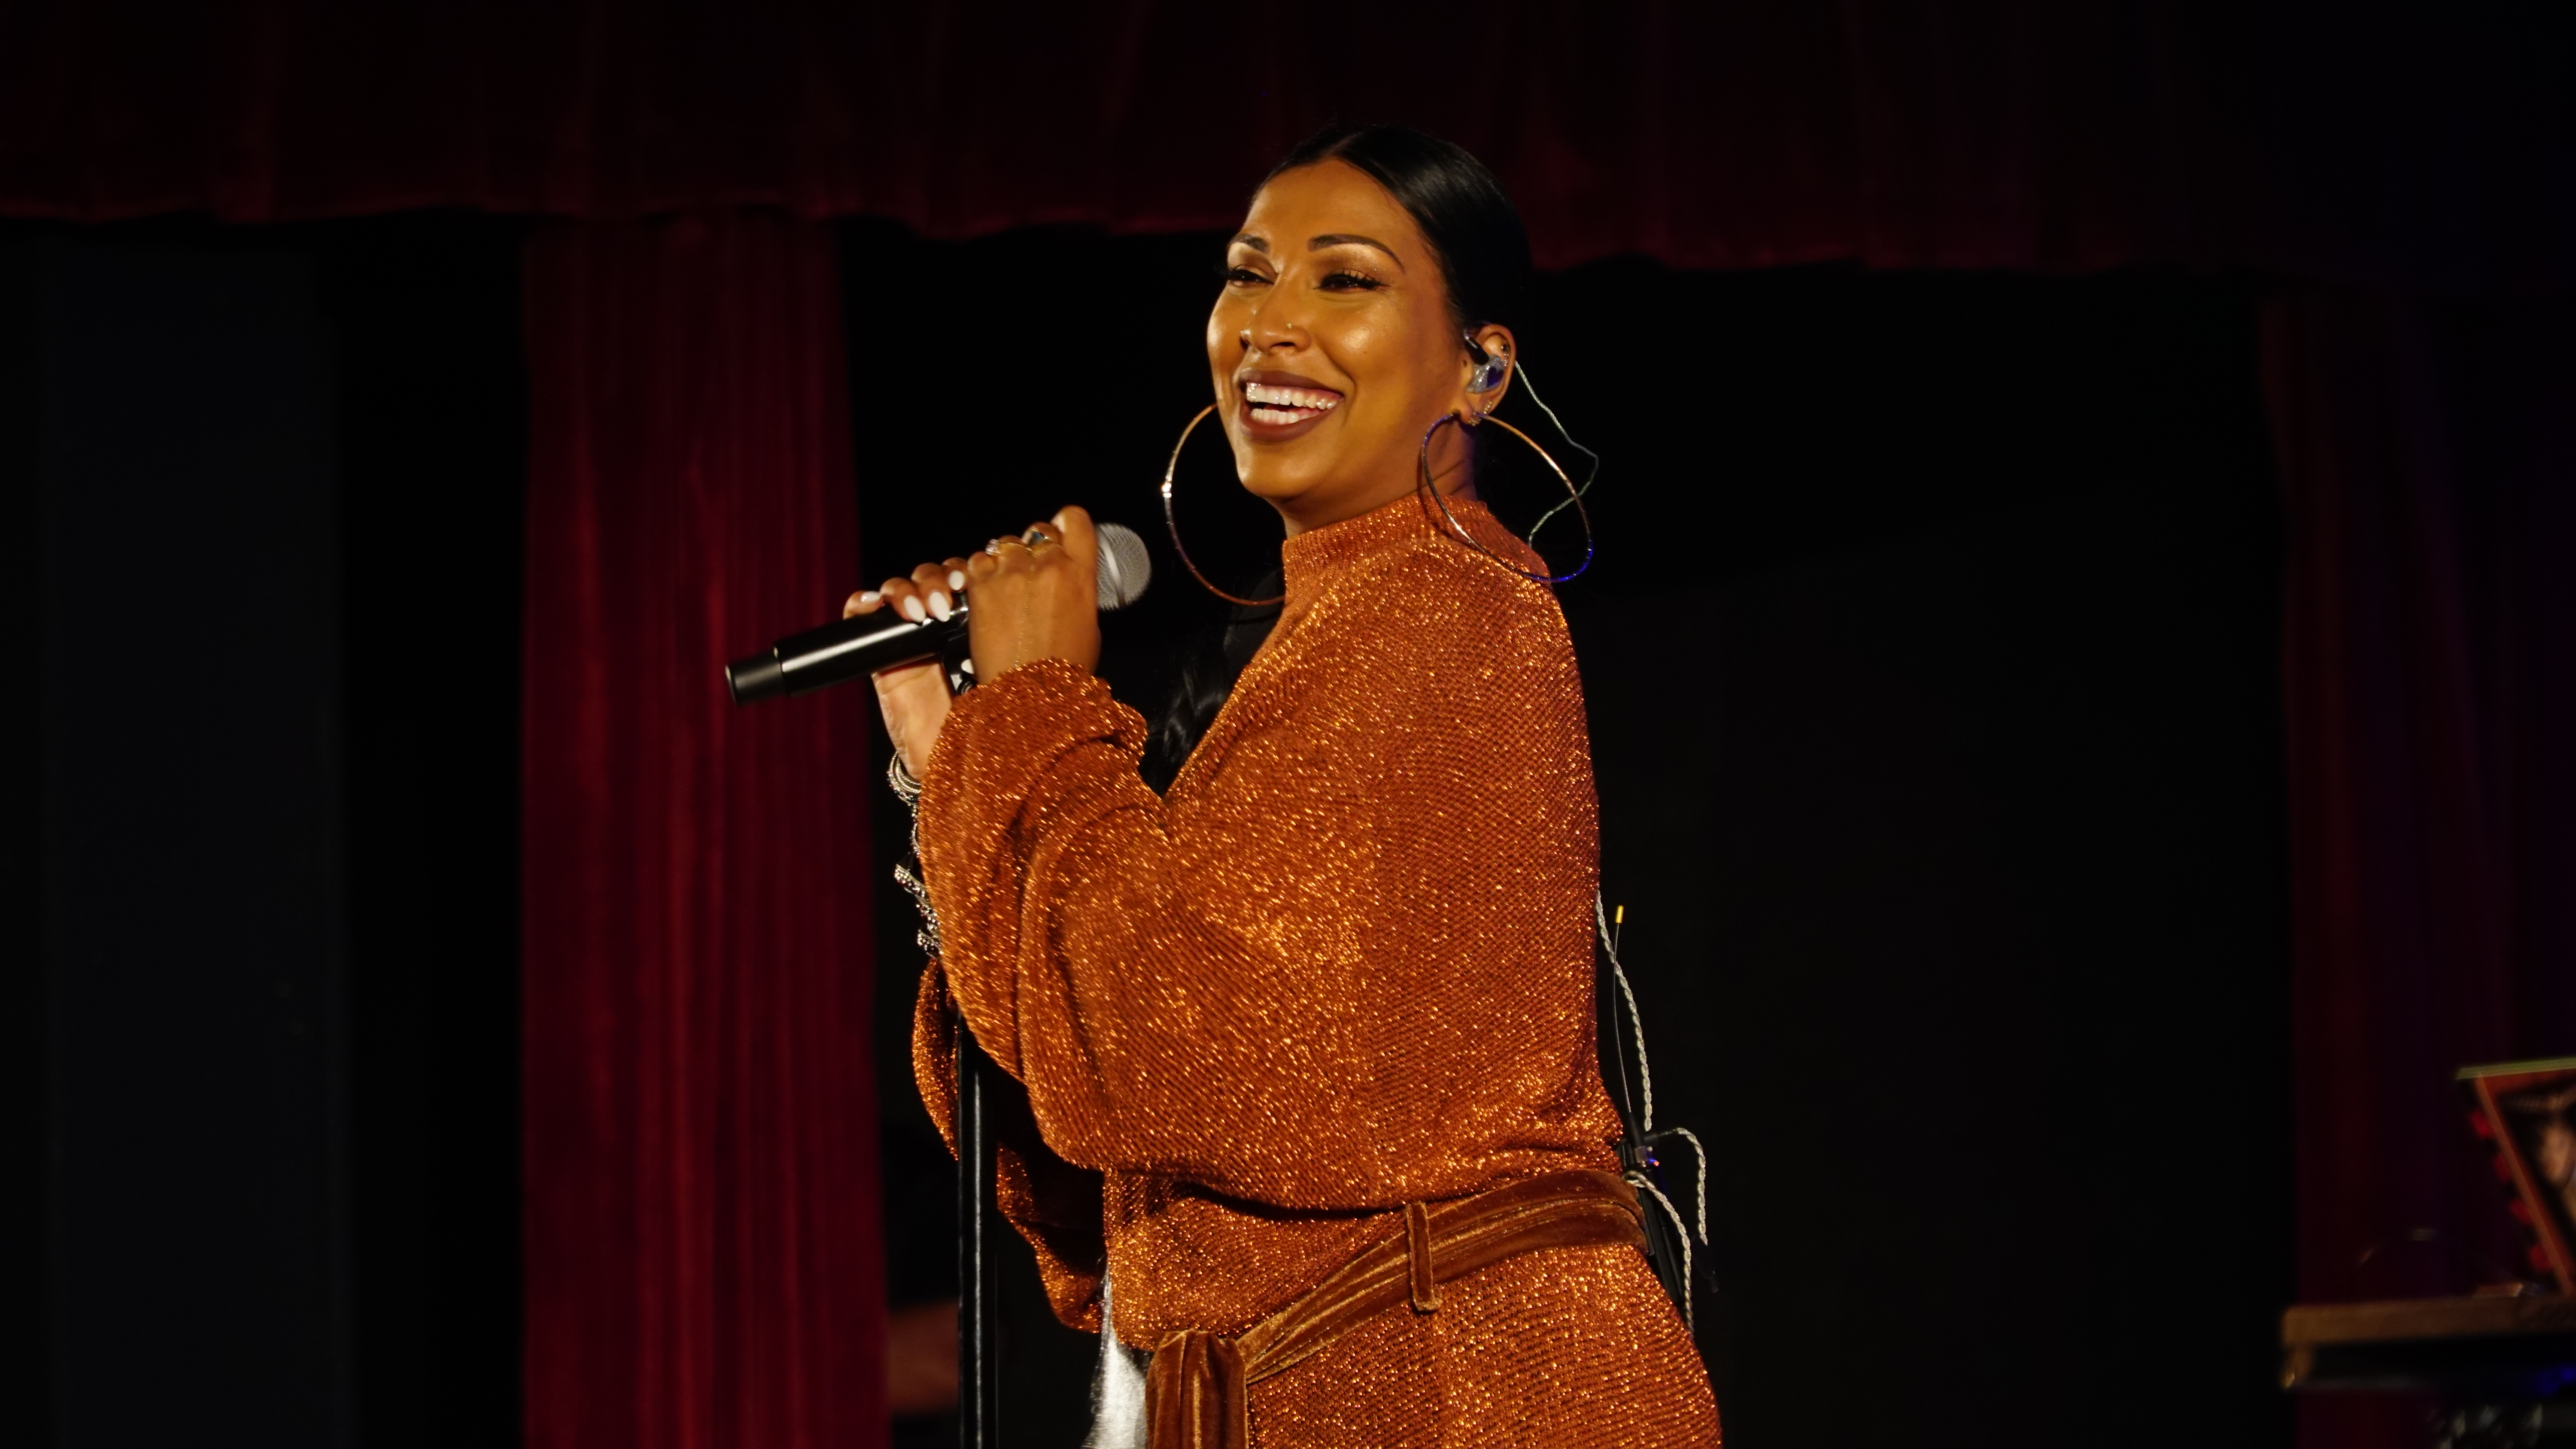 Majic After Dark Melanie Fiona